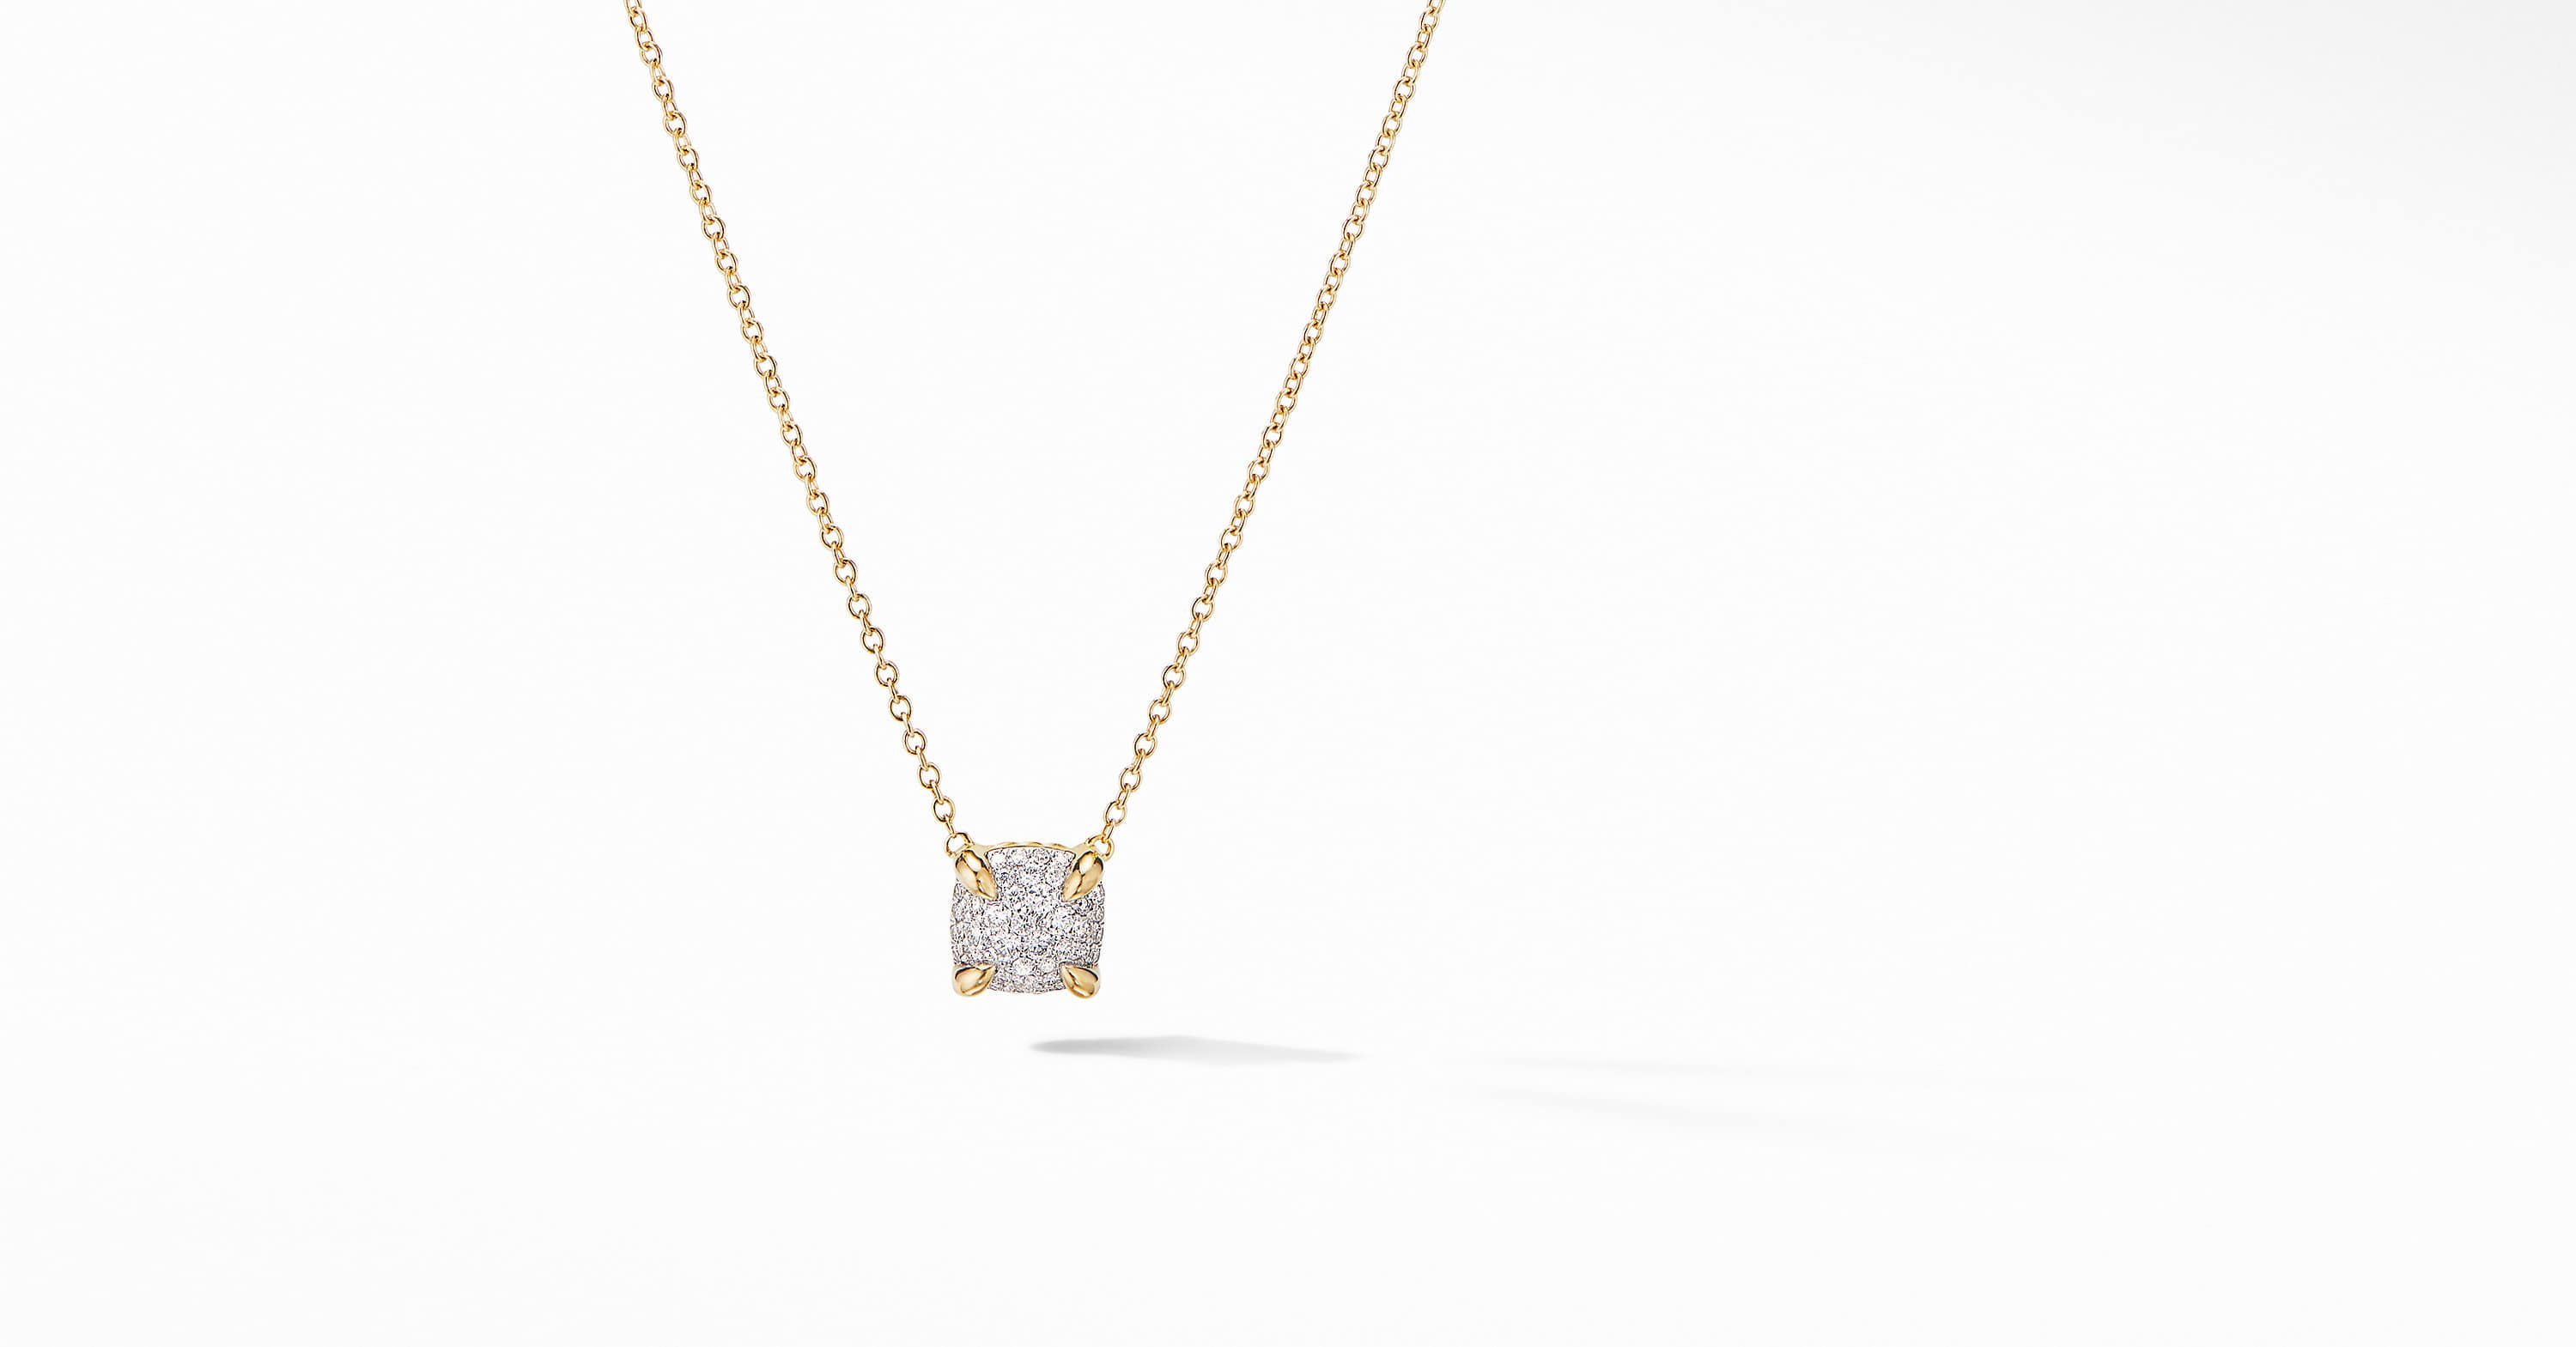 Chatelaine Pendant Necklace in 18K Yellow Gold with Full Pavé, 7mm